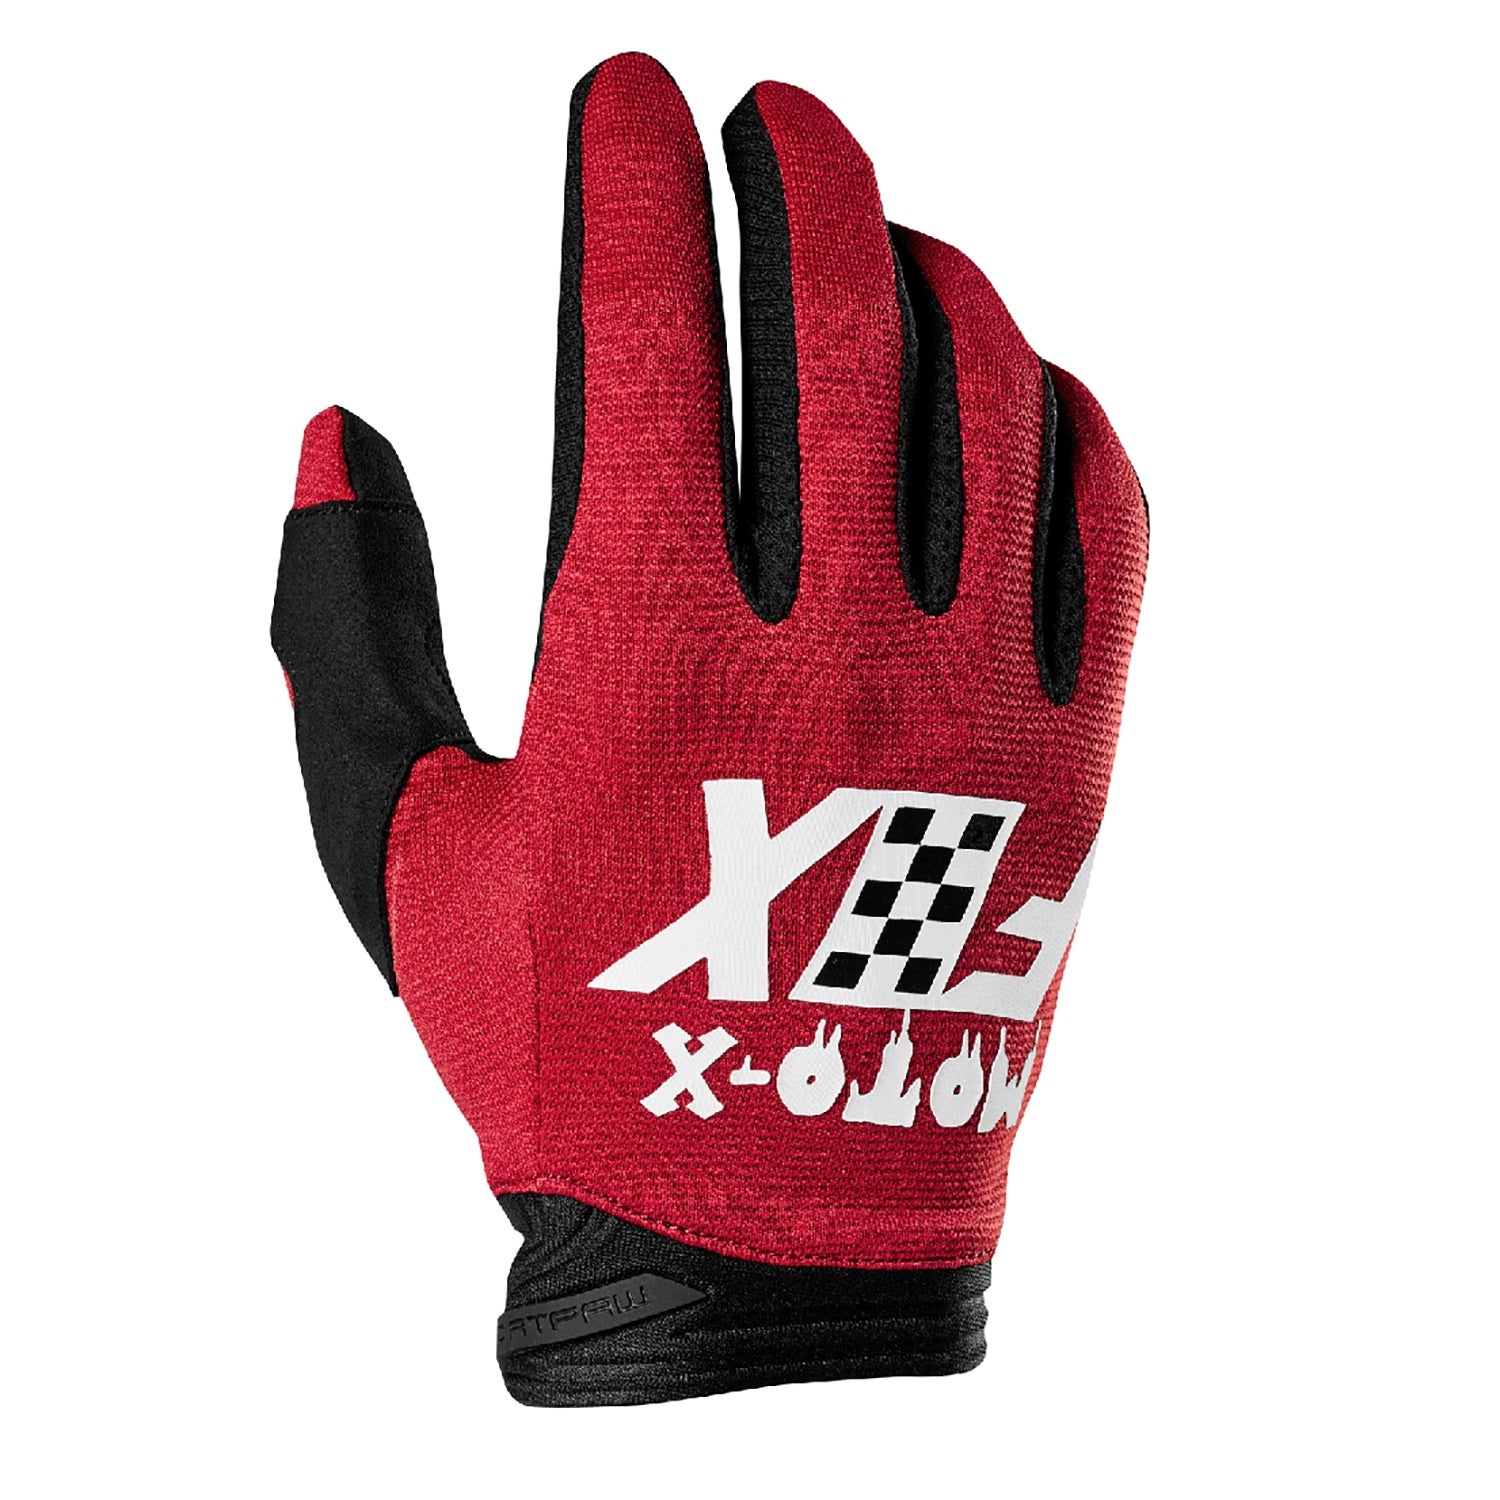 MX Glove Fox Racing Dirtpaw Czar Enduro